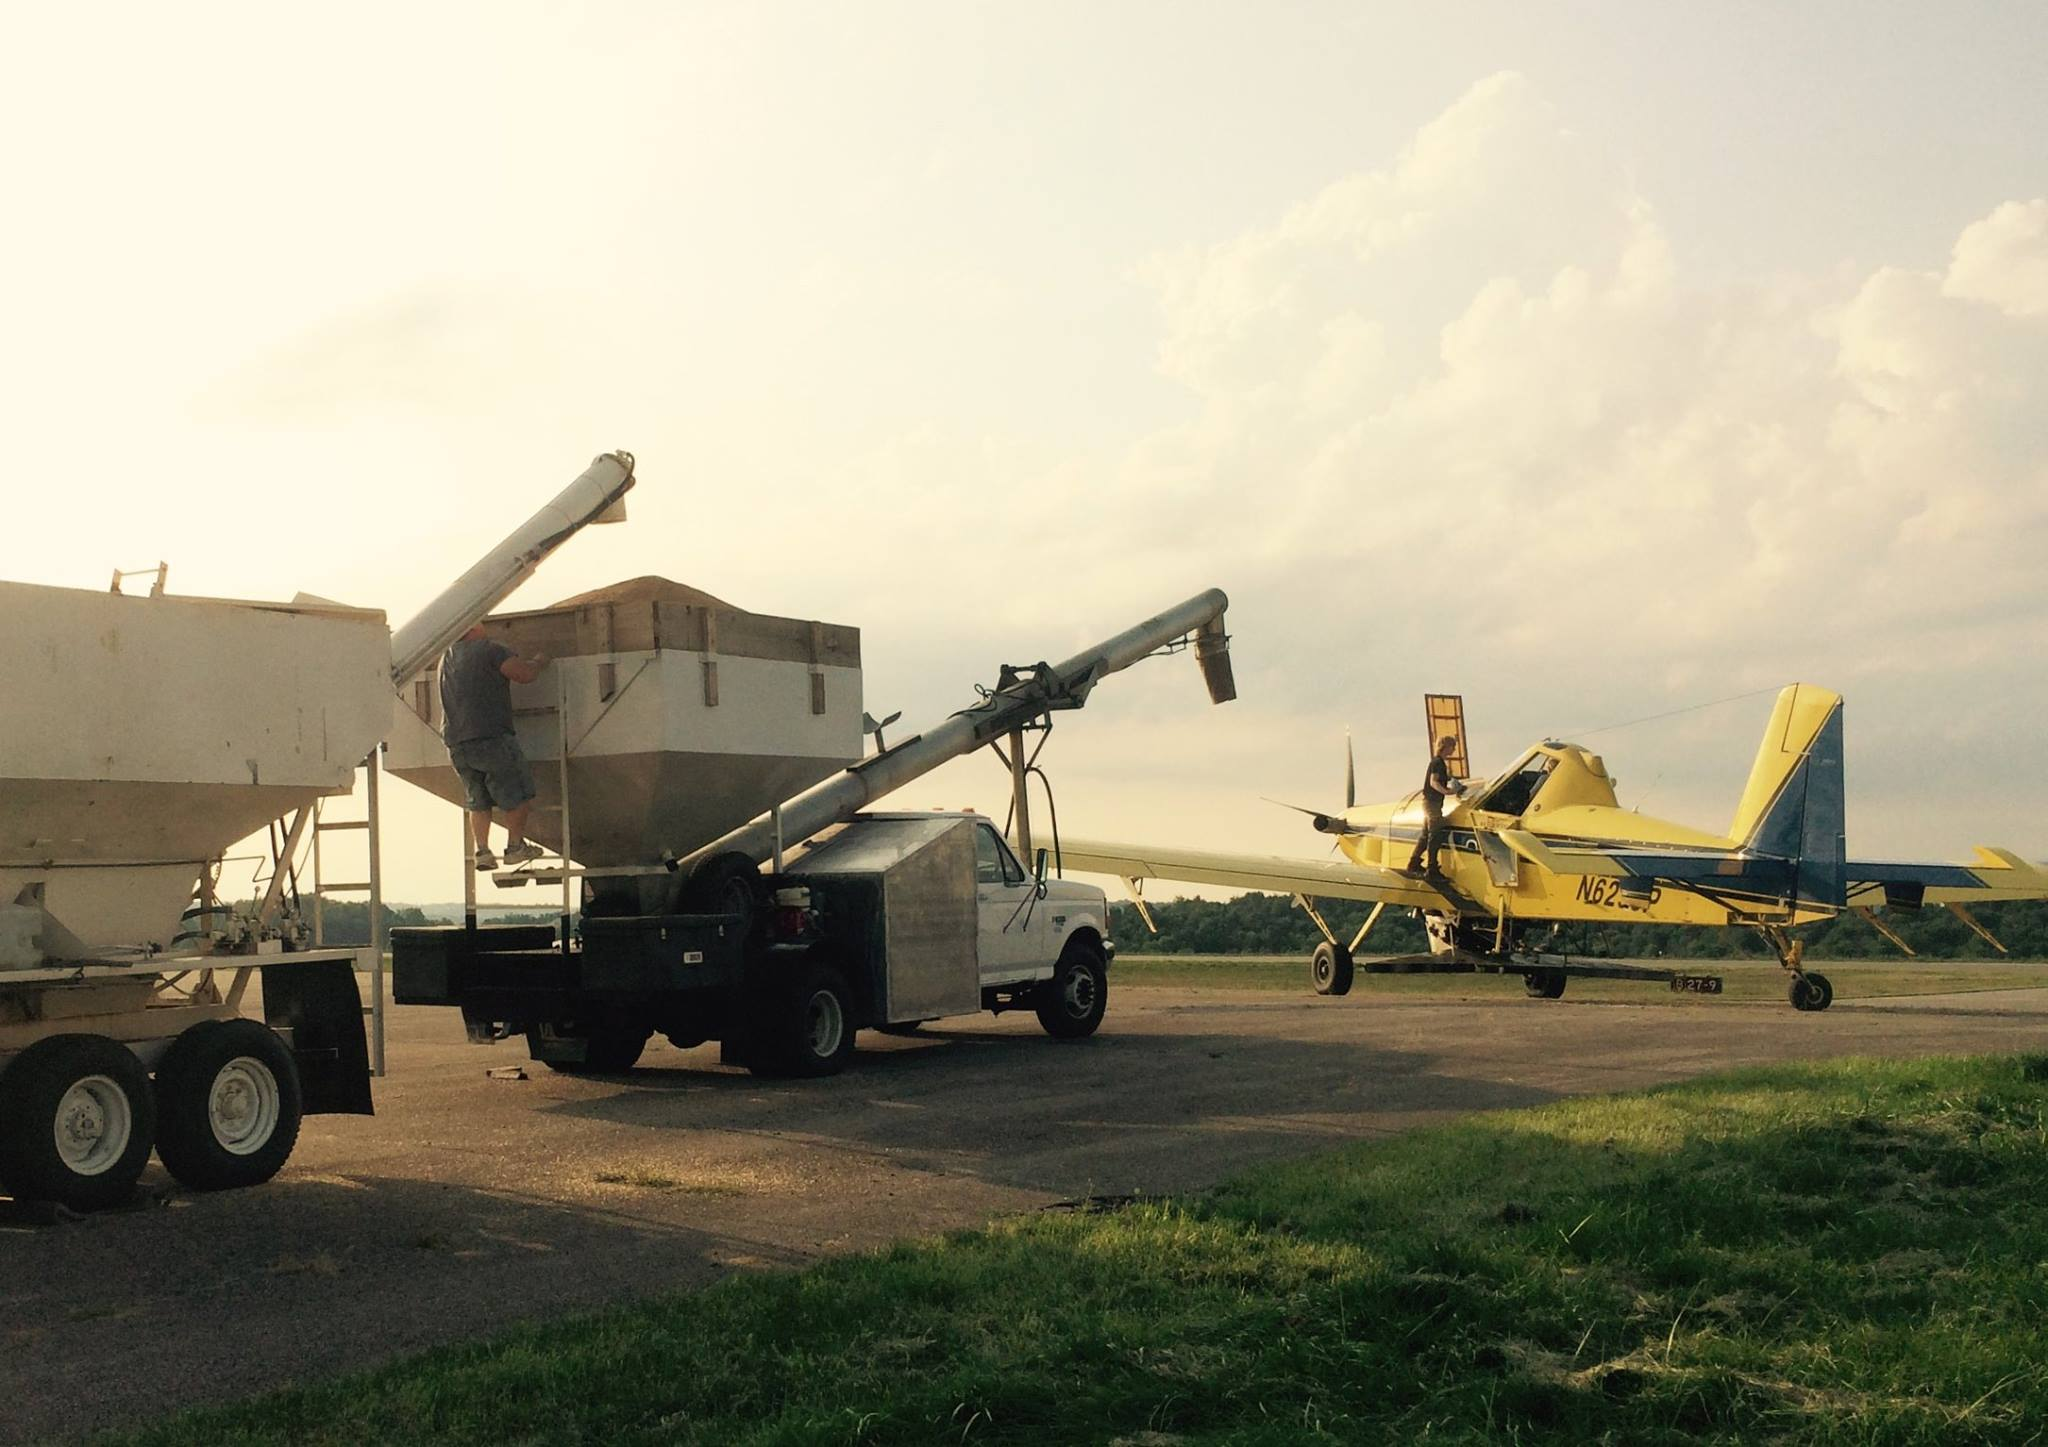 Holmes SWCD coordinates an extensive aerial cover crop seeding program for area farmers.